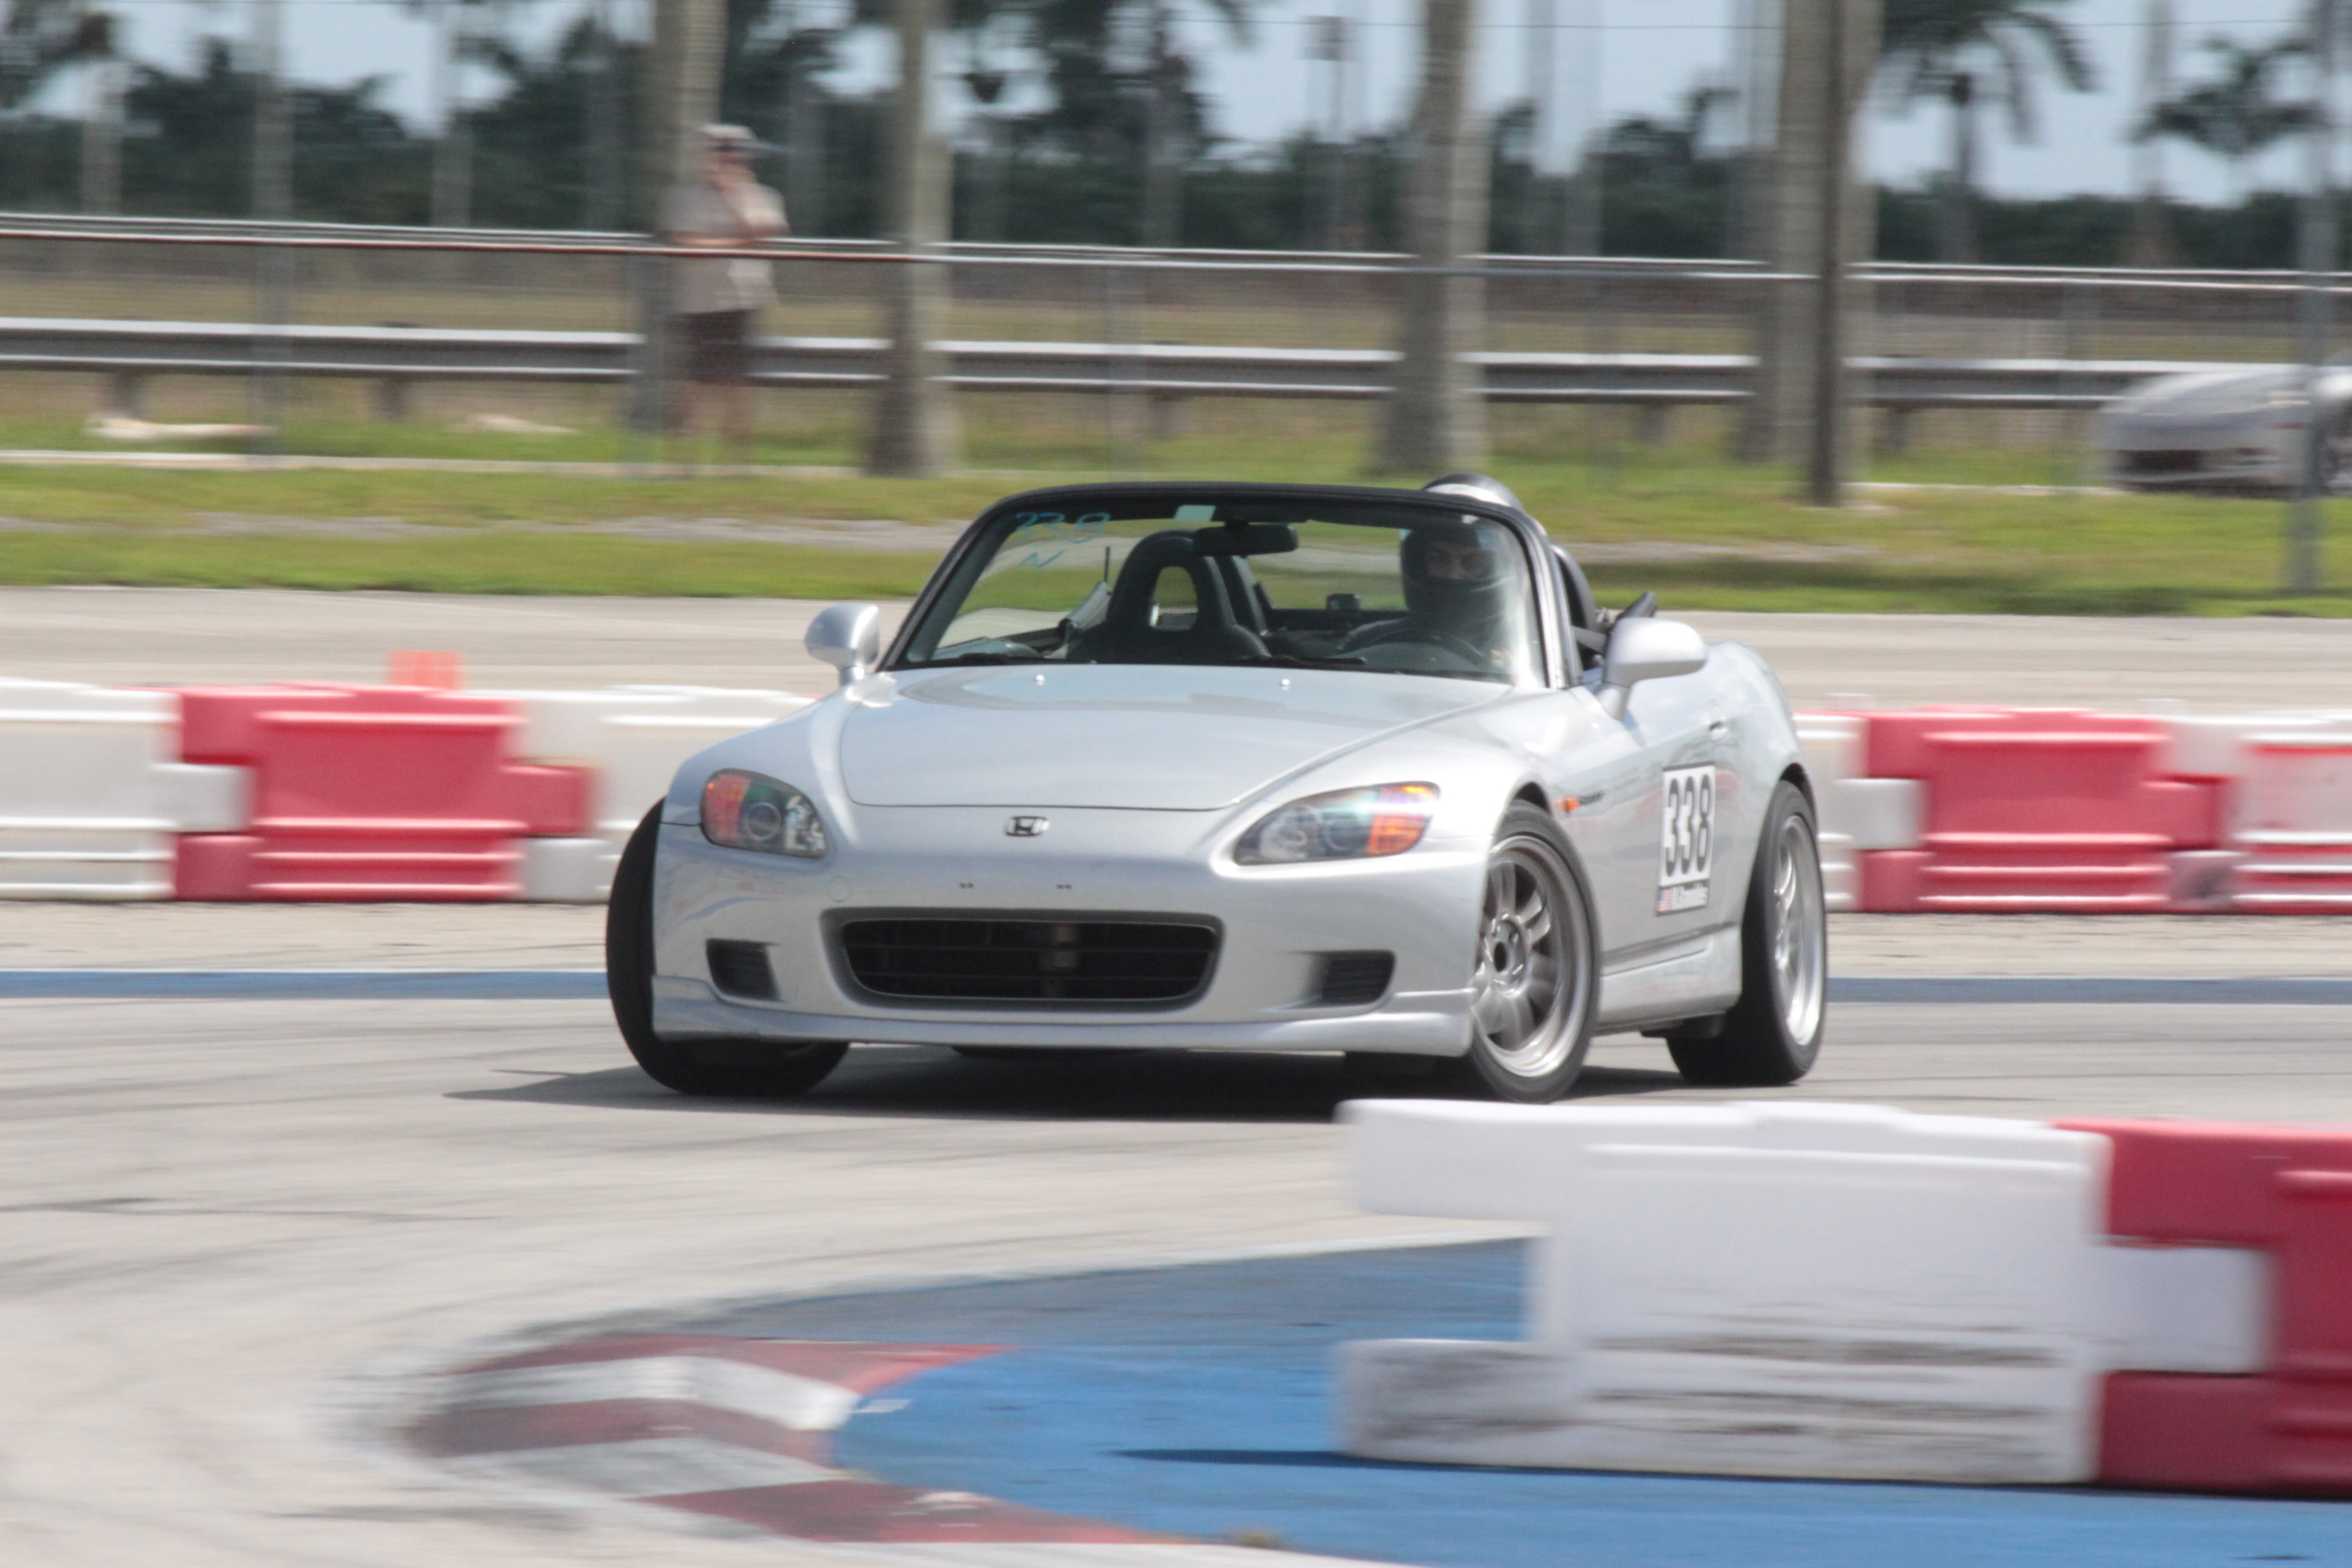 S2000 at SRMS' Cars, Coffee, and Racing